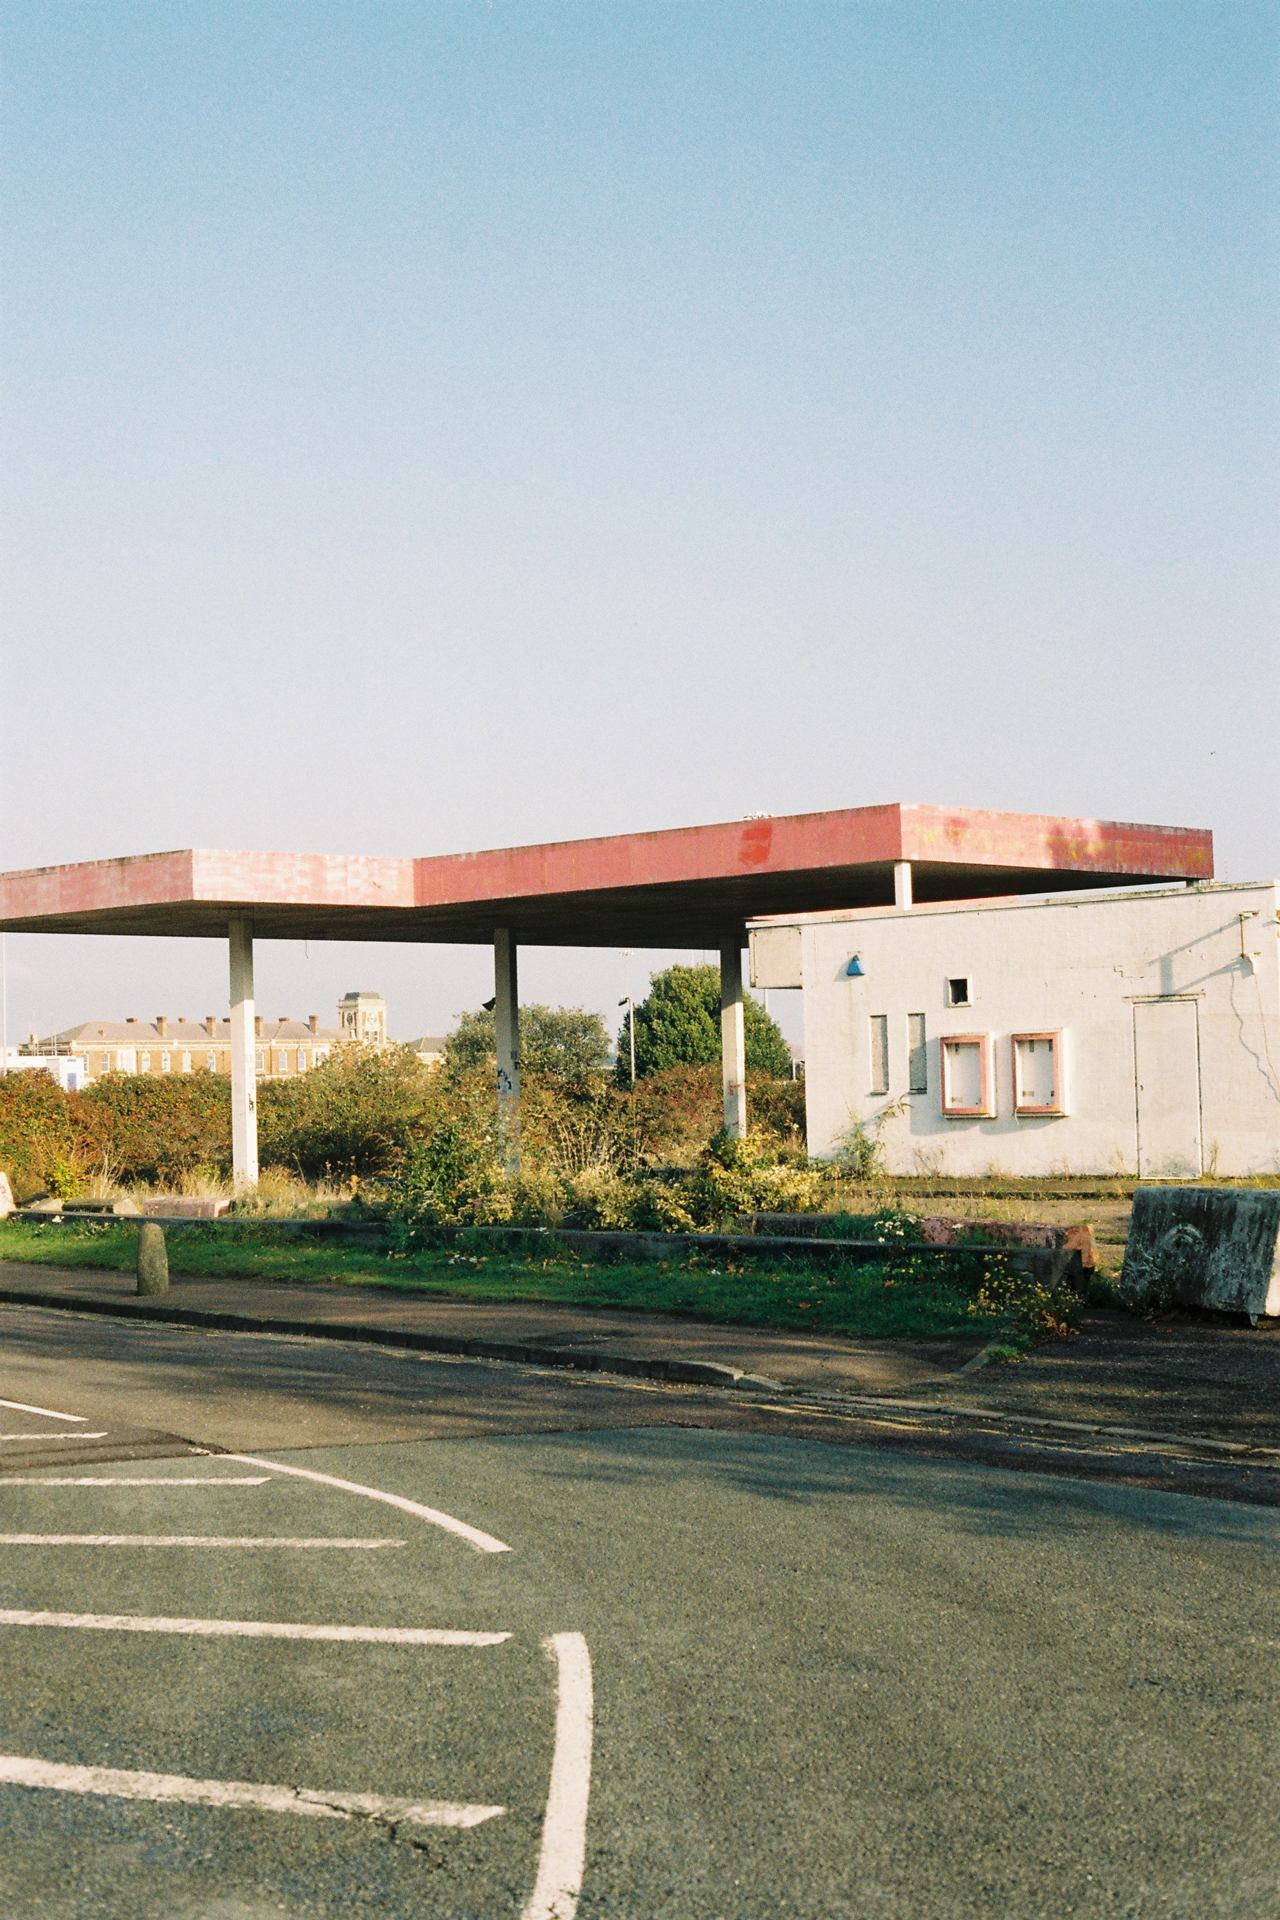 The old red gas station